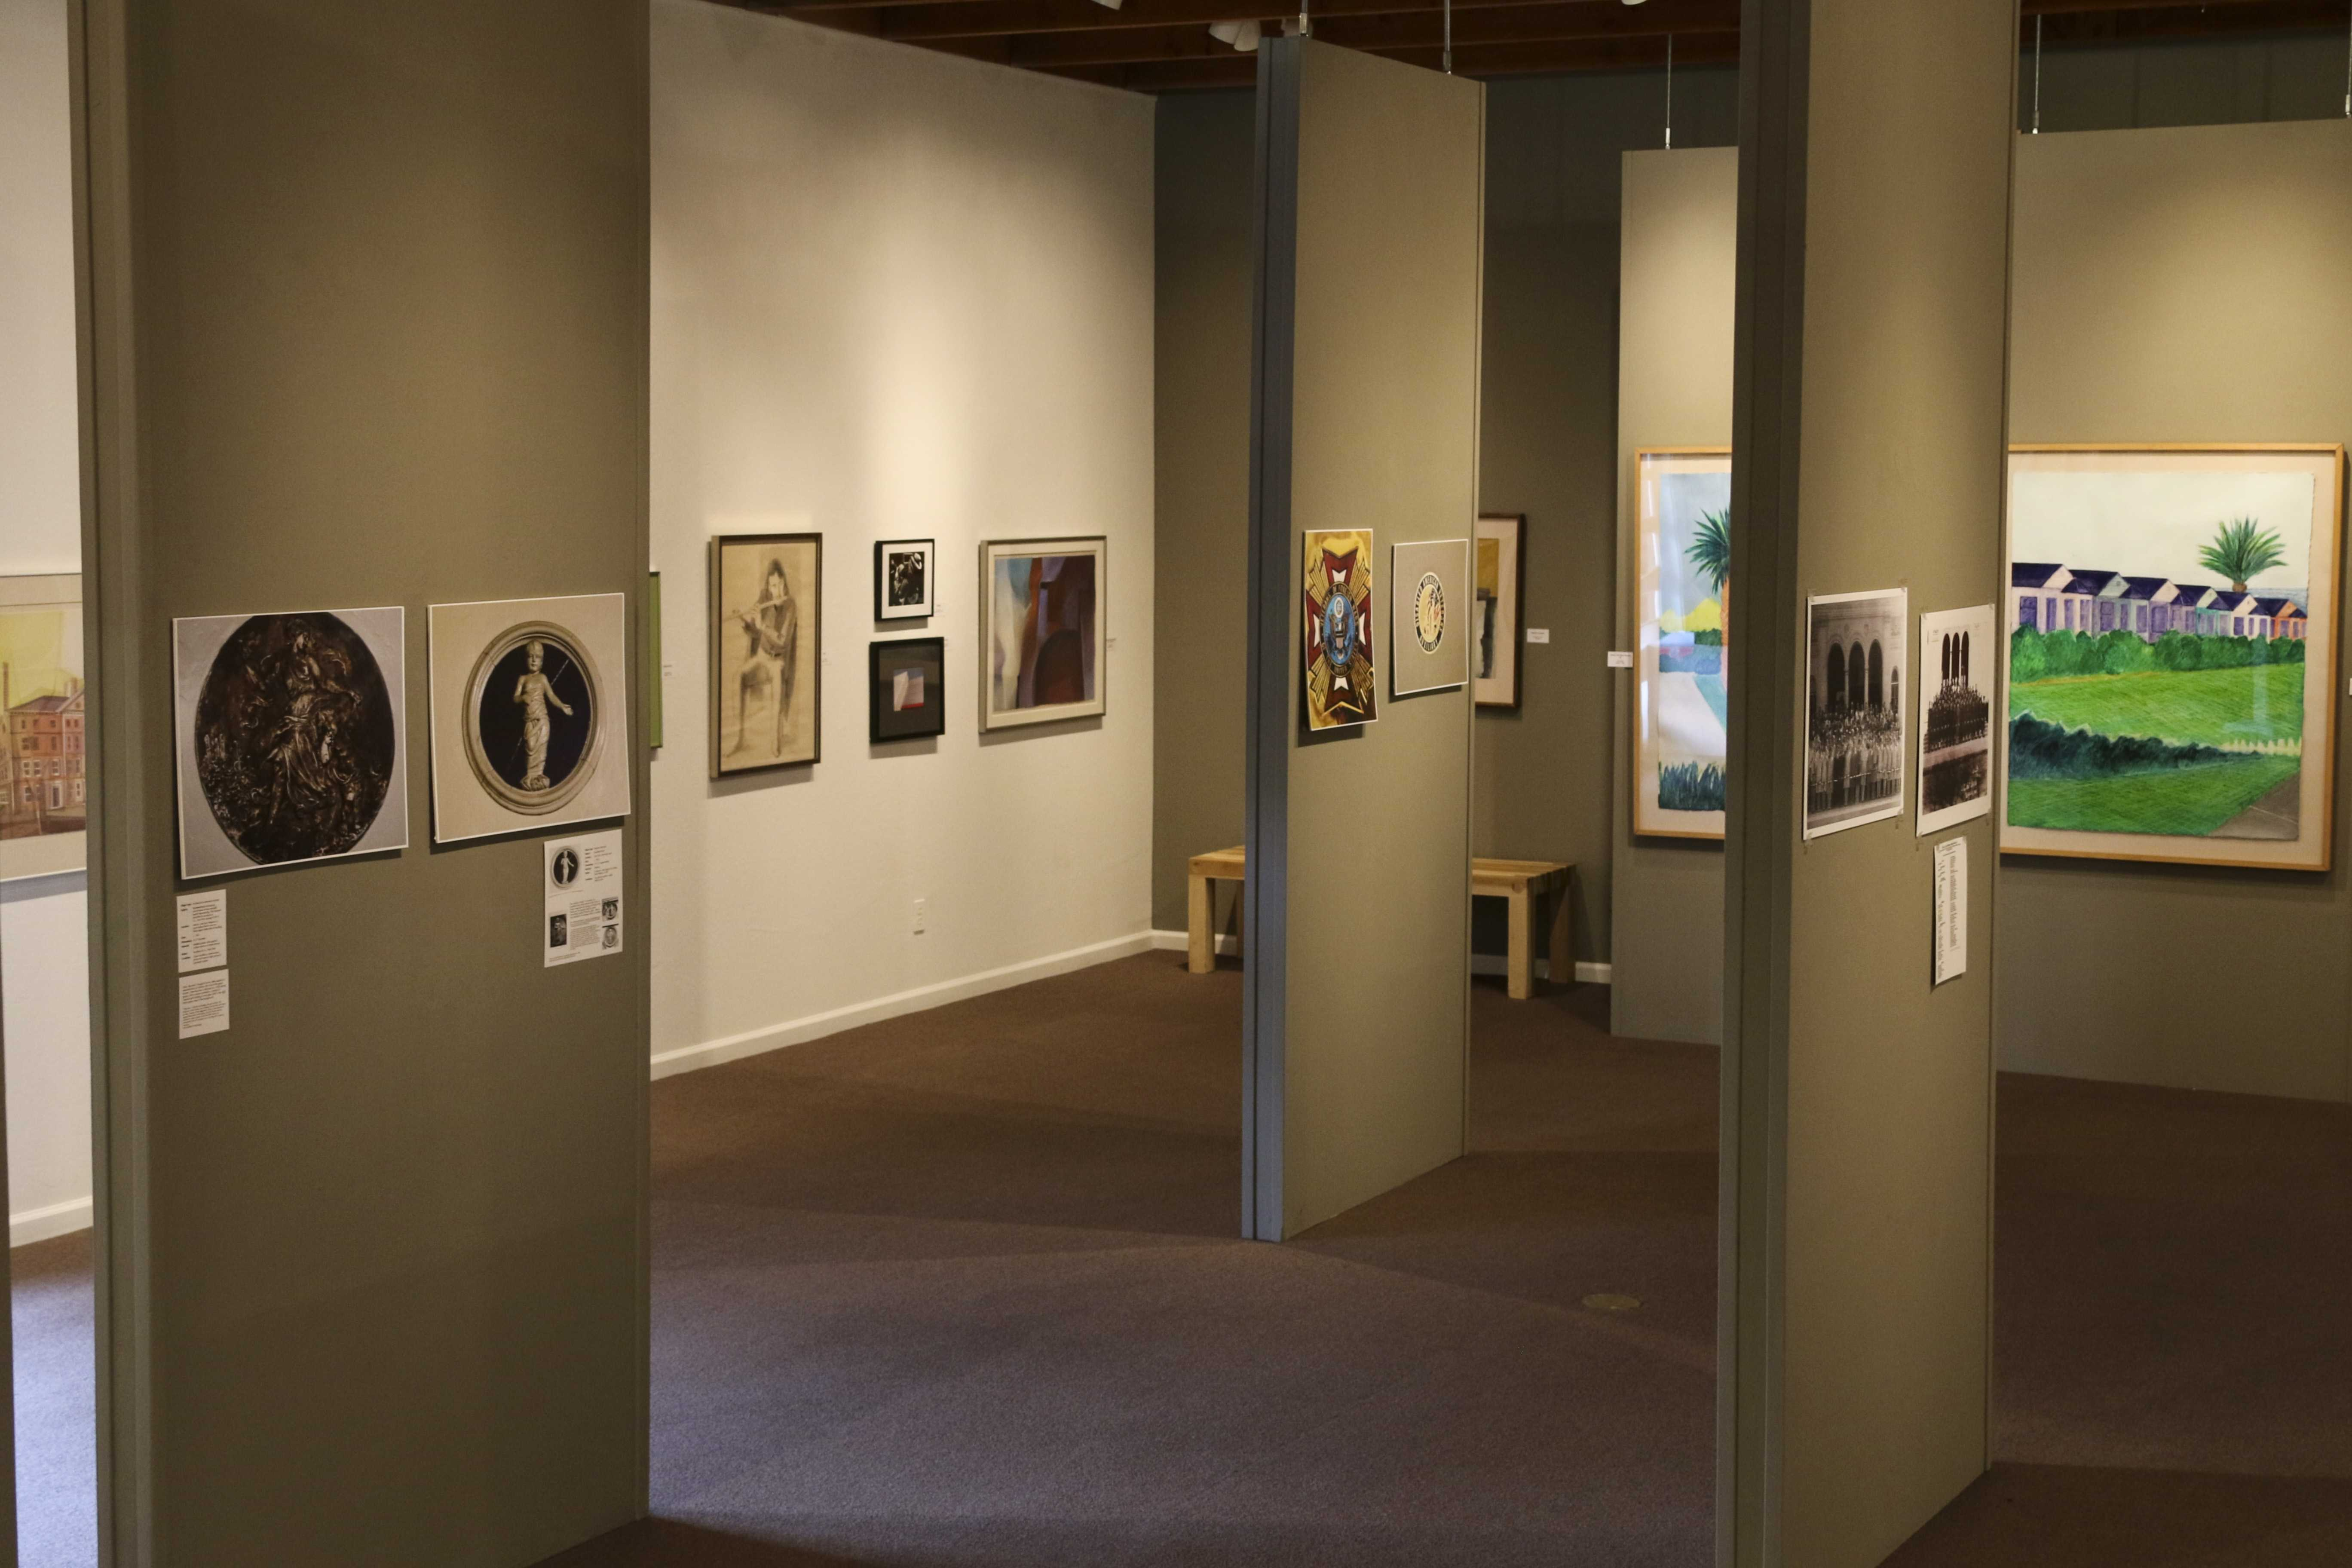 Pop-up museum displays Northern California art